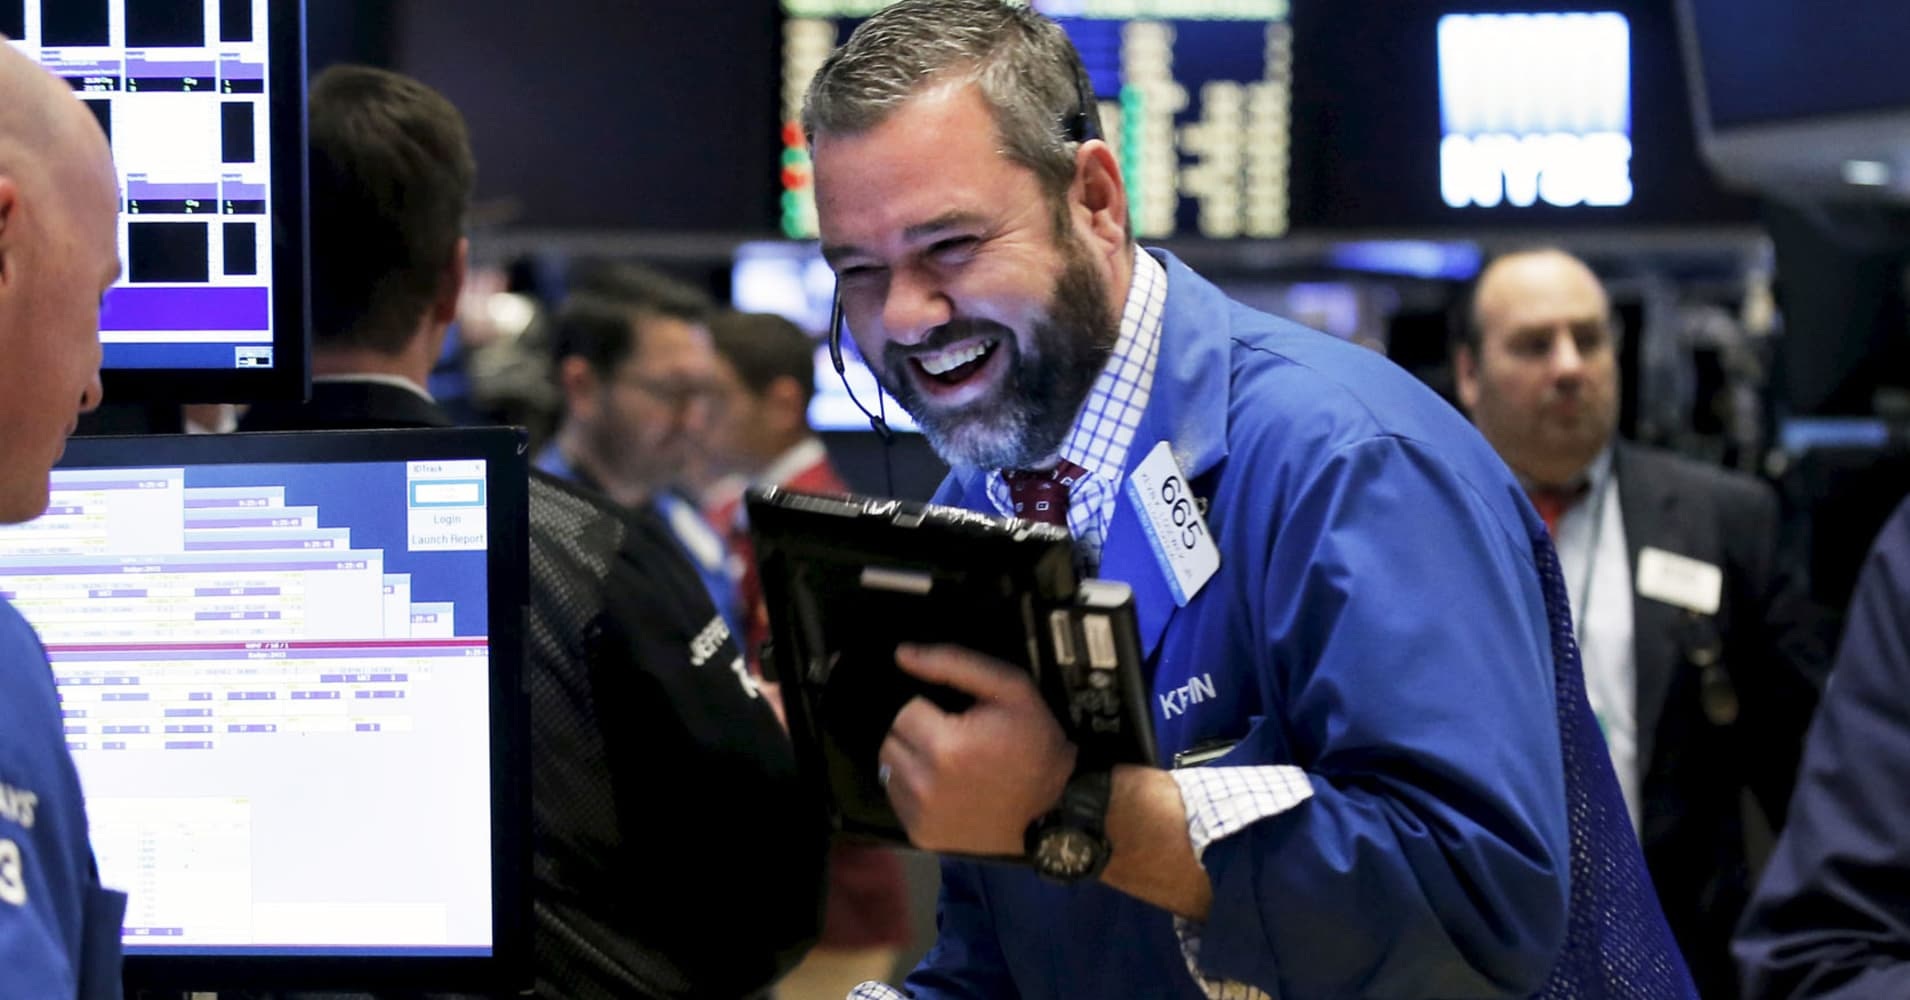 Dow rises 200 points as French election results spark rally; Nasdaq hits all-time high